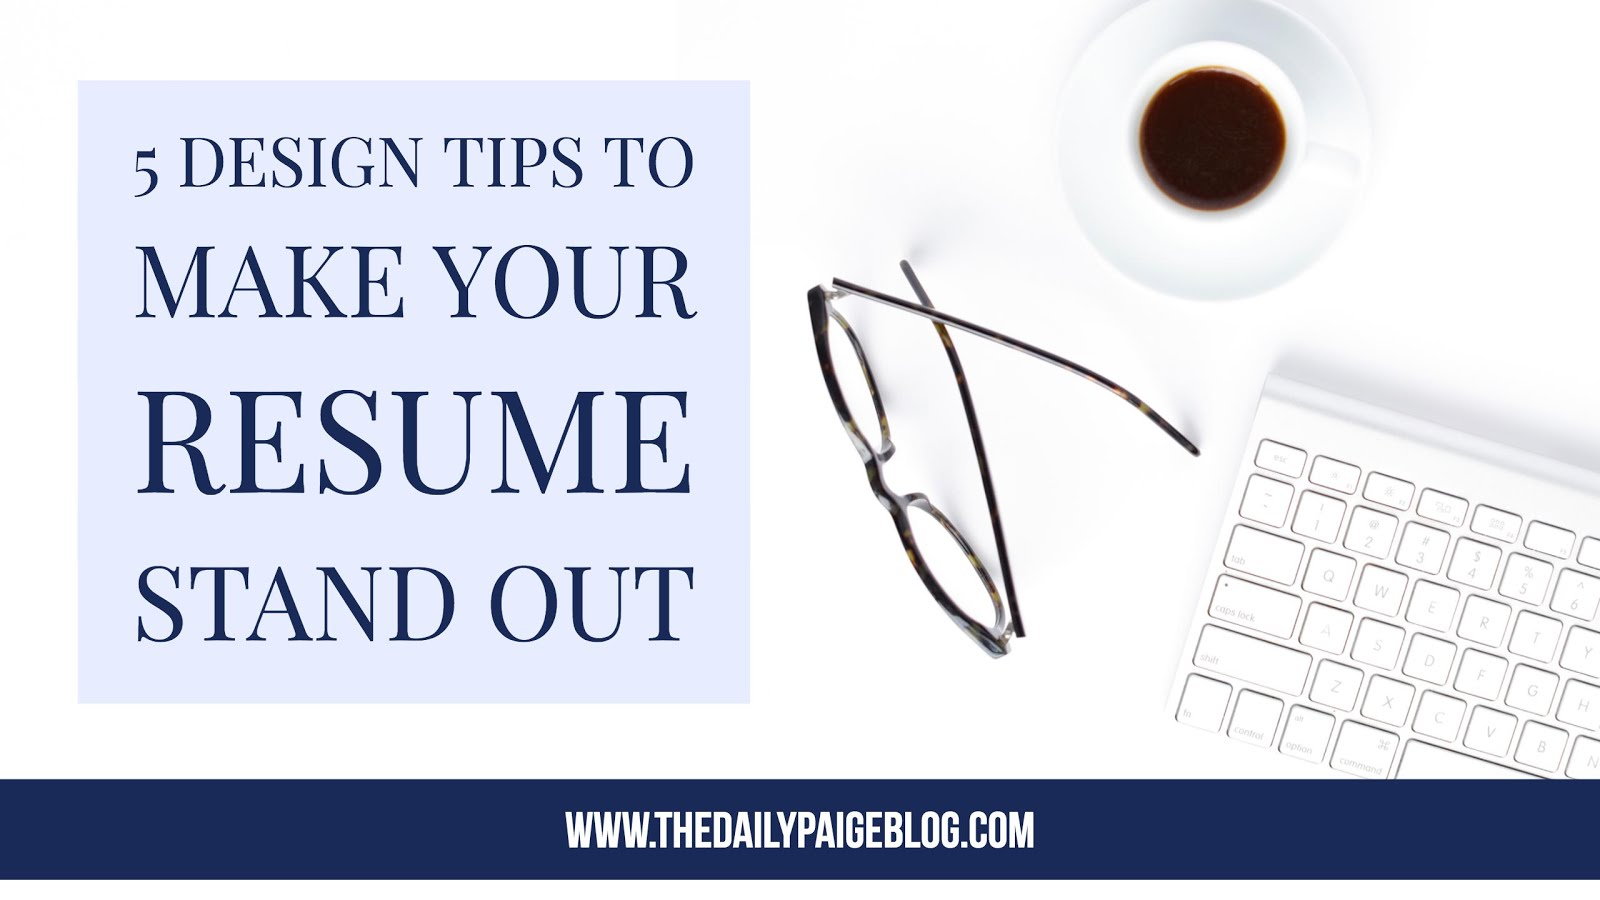 5 Tips For Designing A Resume That Will Stand Out On Every Desk  Resume Design Tips